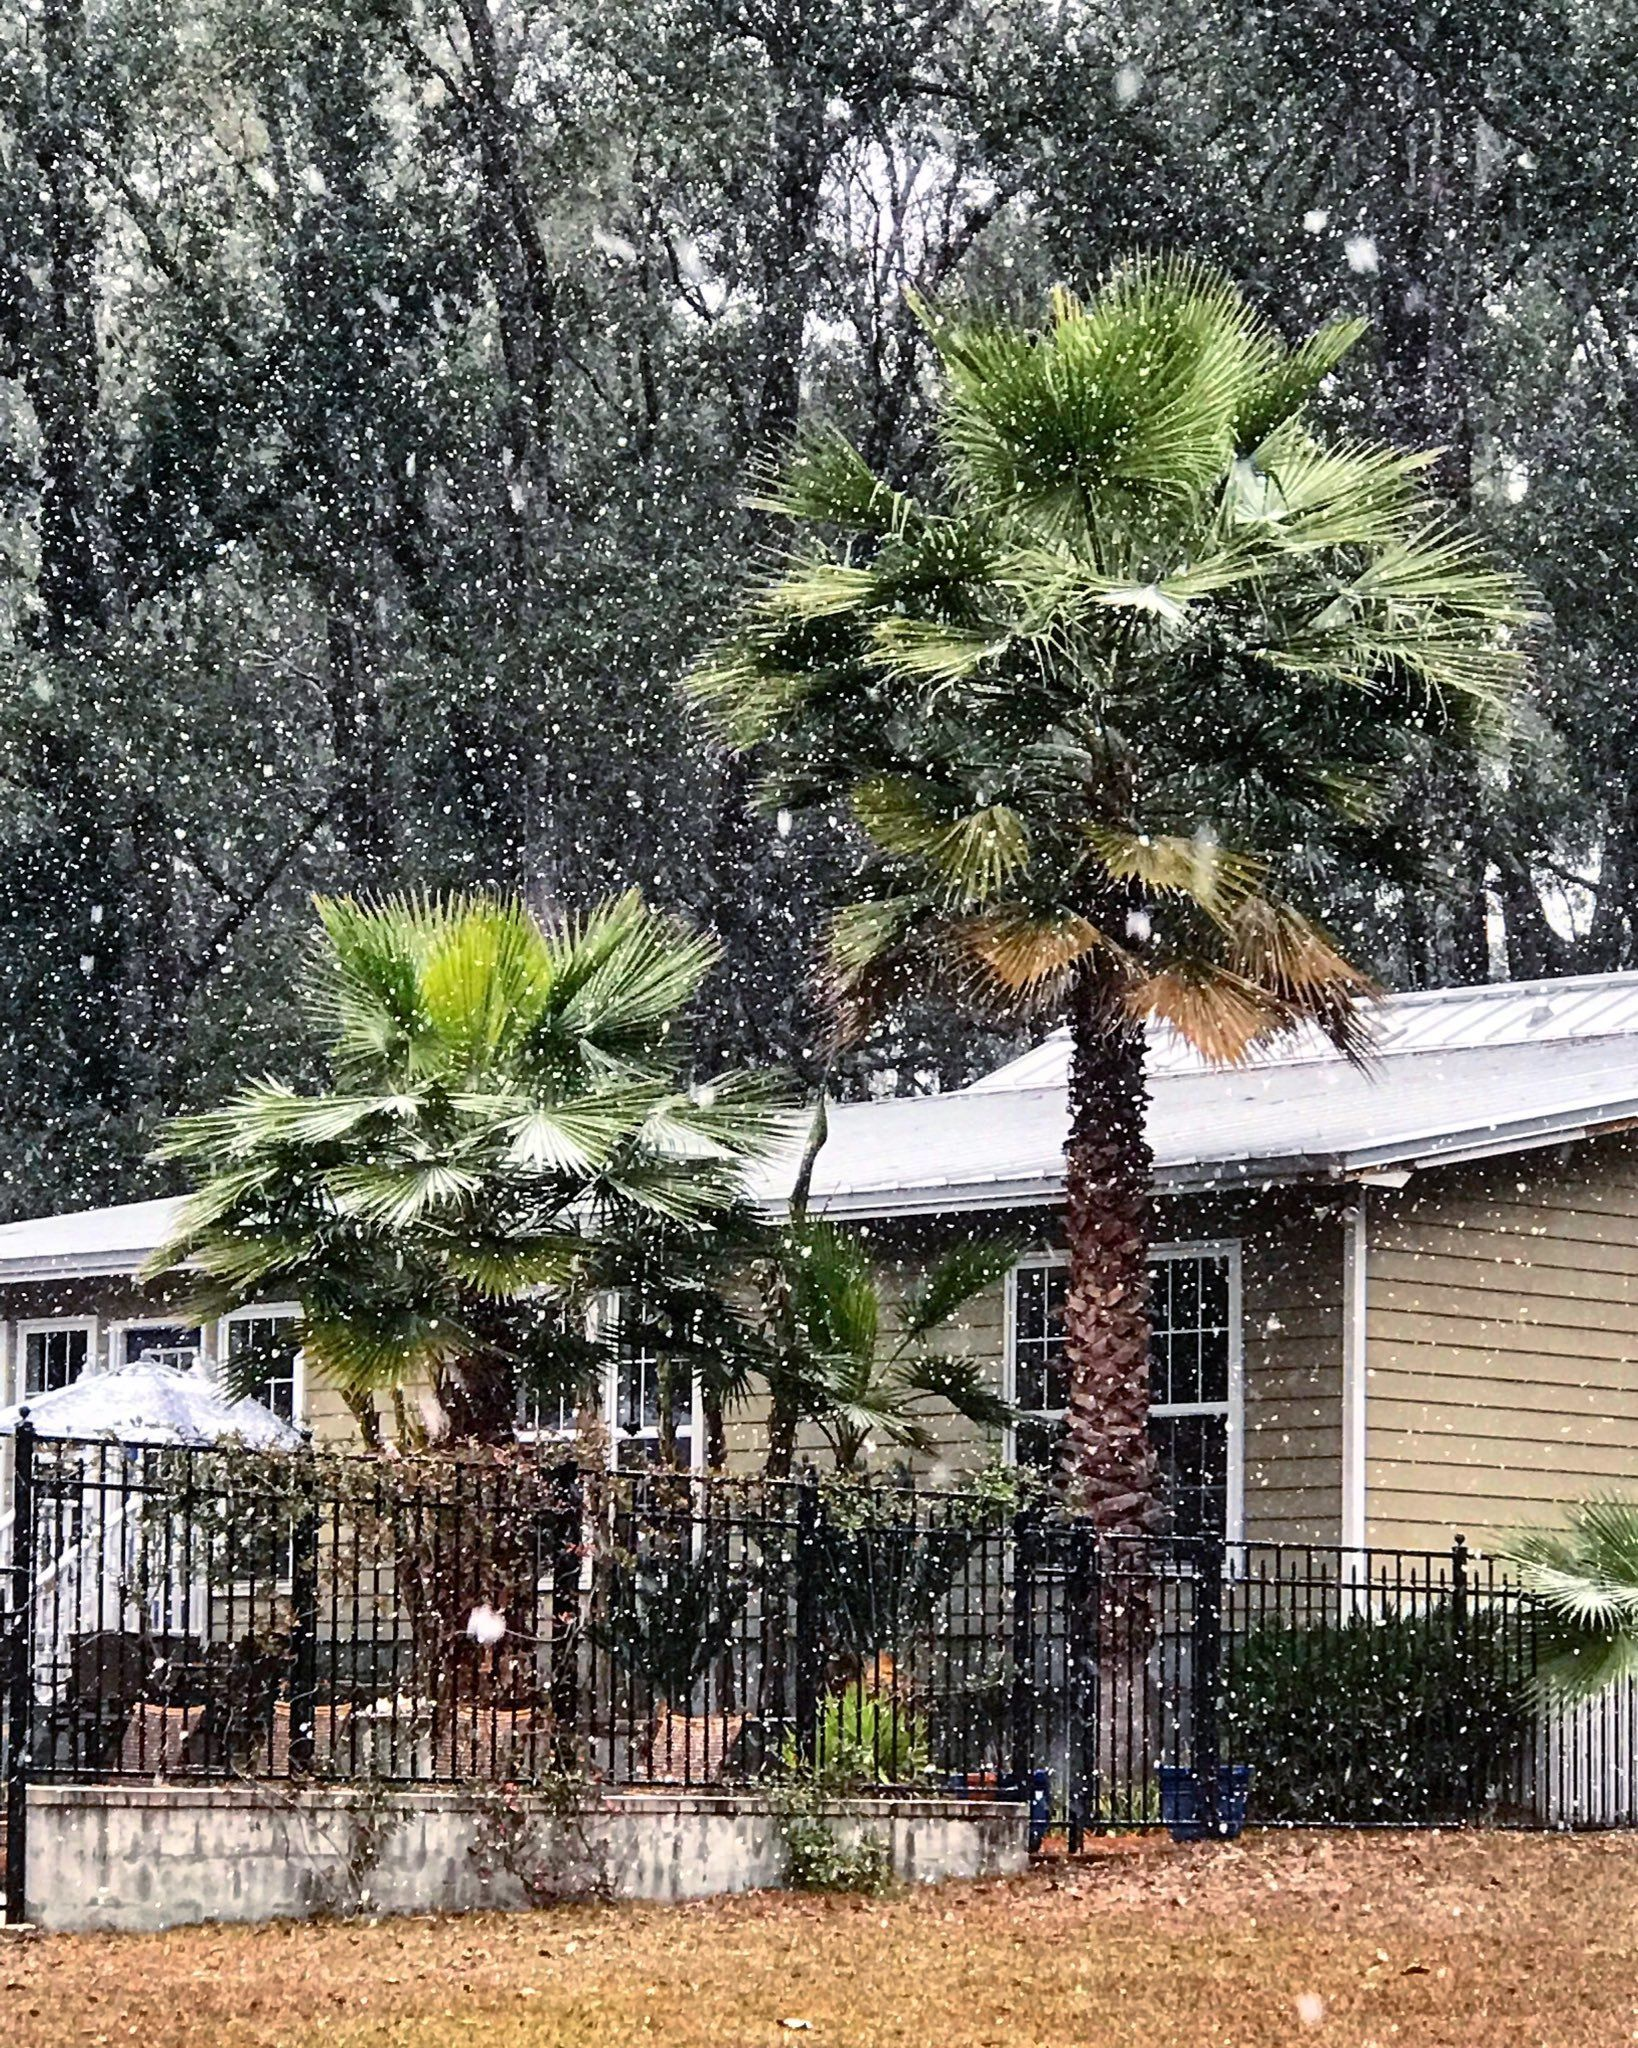 It's snowing in Tallahassee, Fla. for the first time in three decades